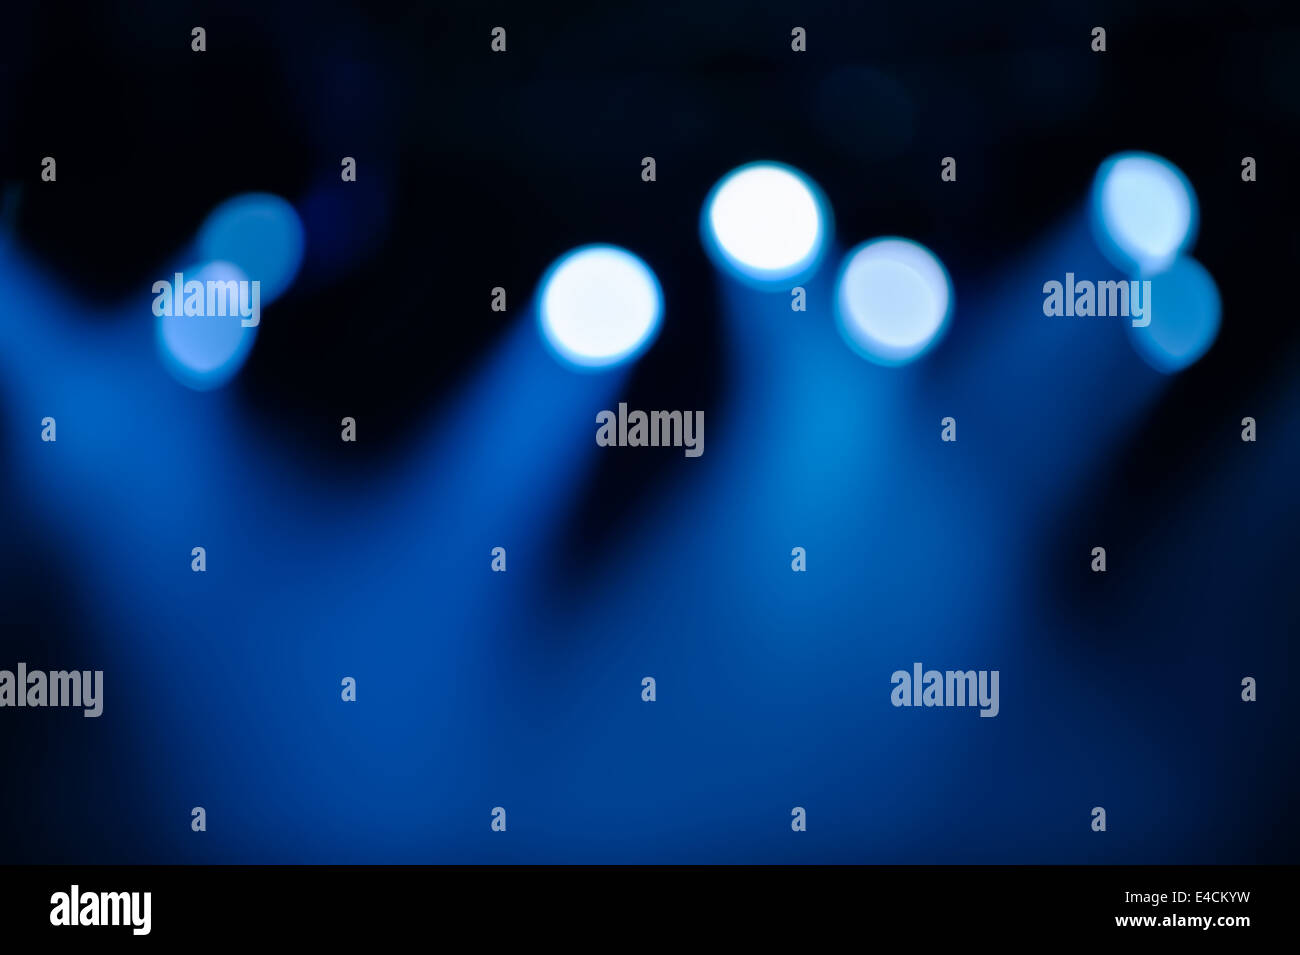 Defocused spots and lighting on stage background - Stock Image